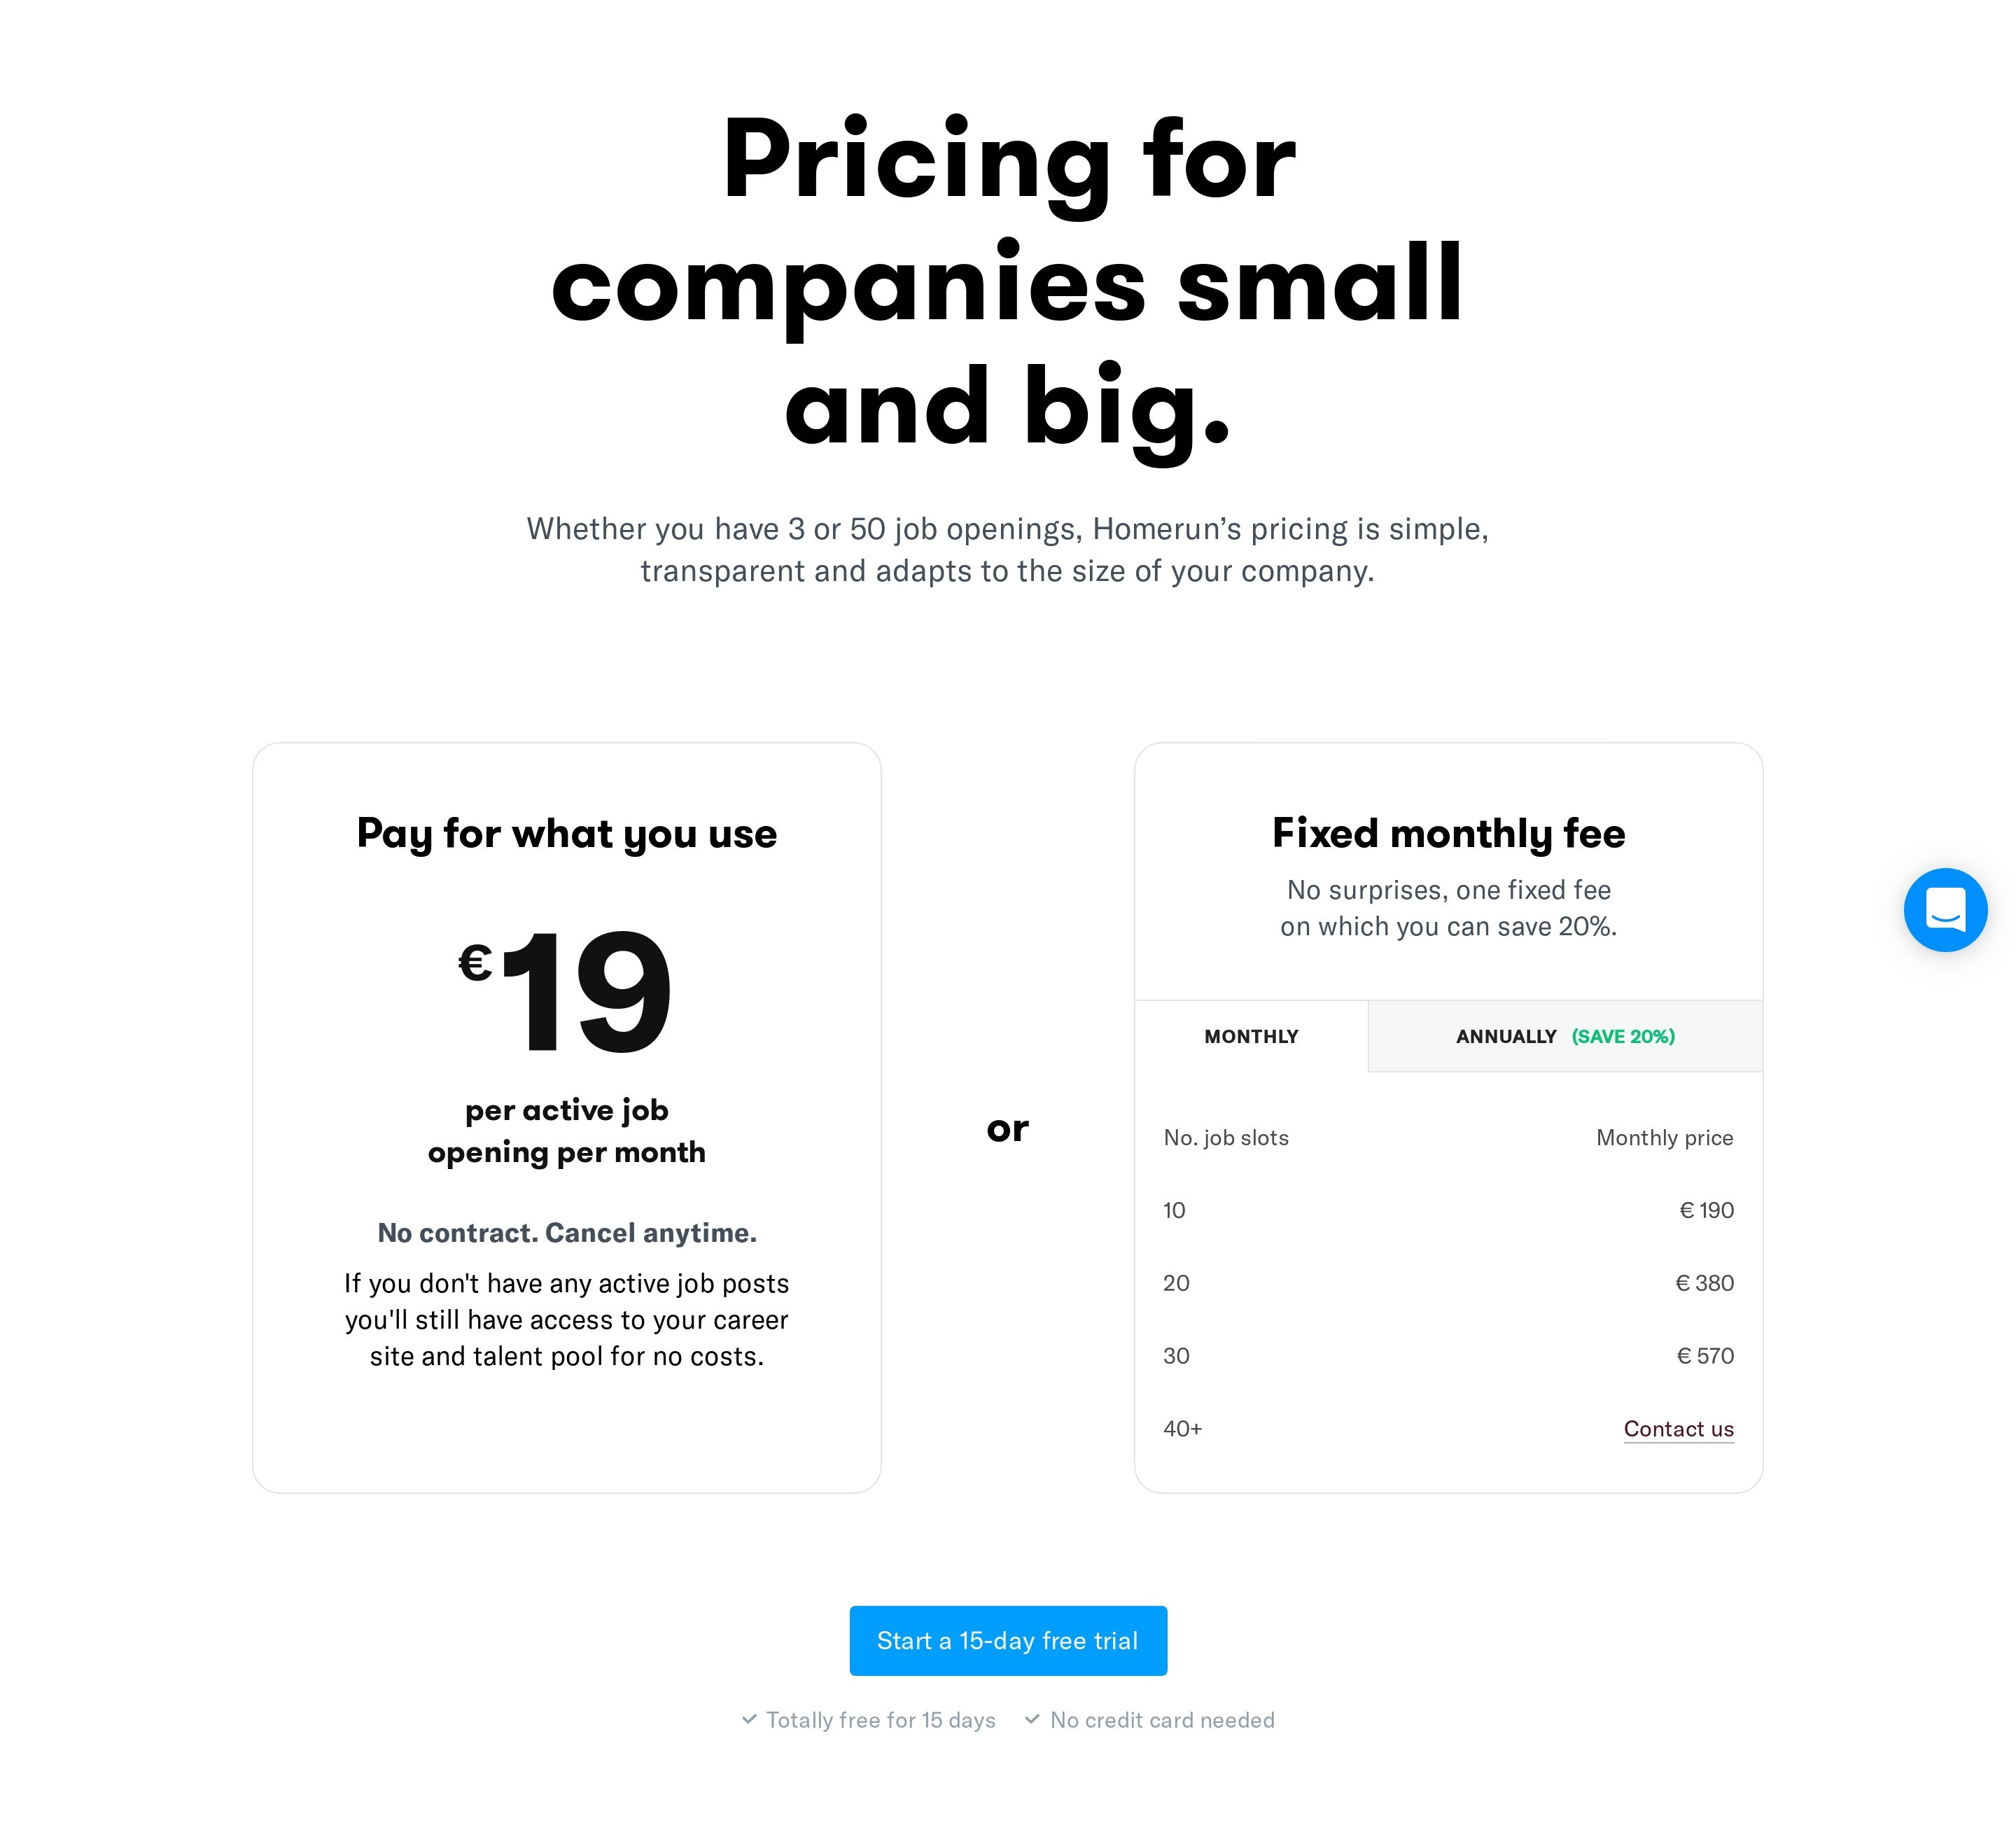 Two Plans Pricing with Free Trial